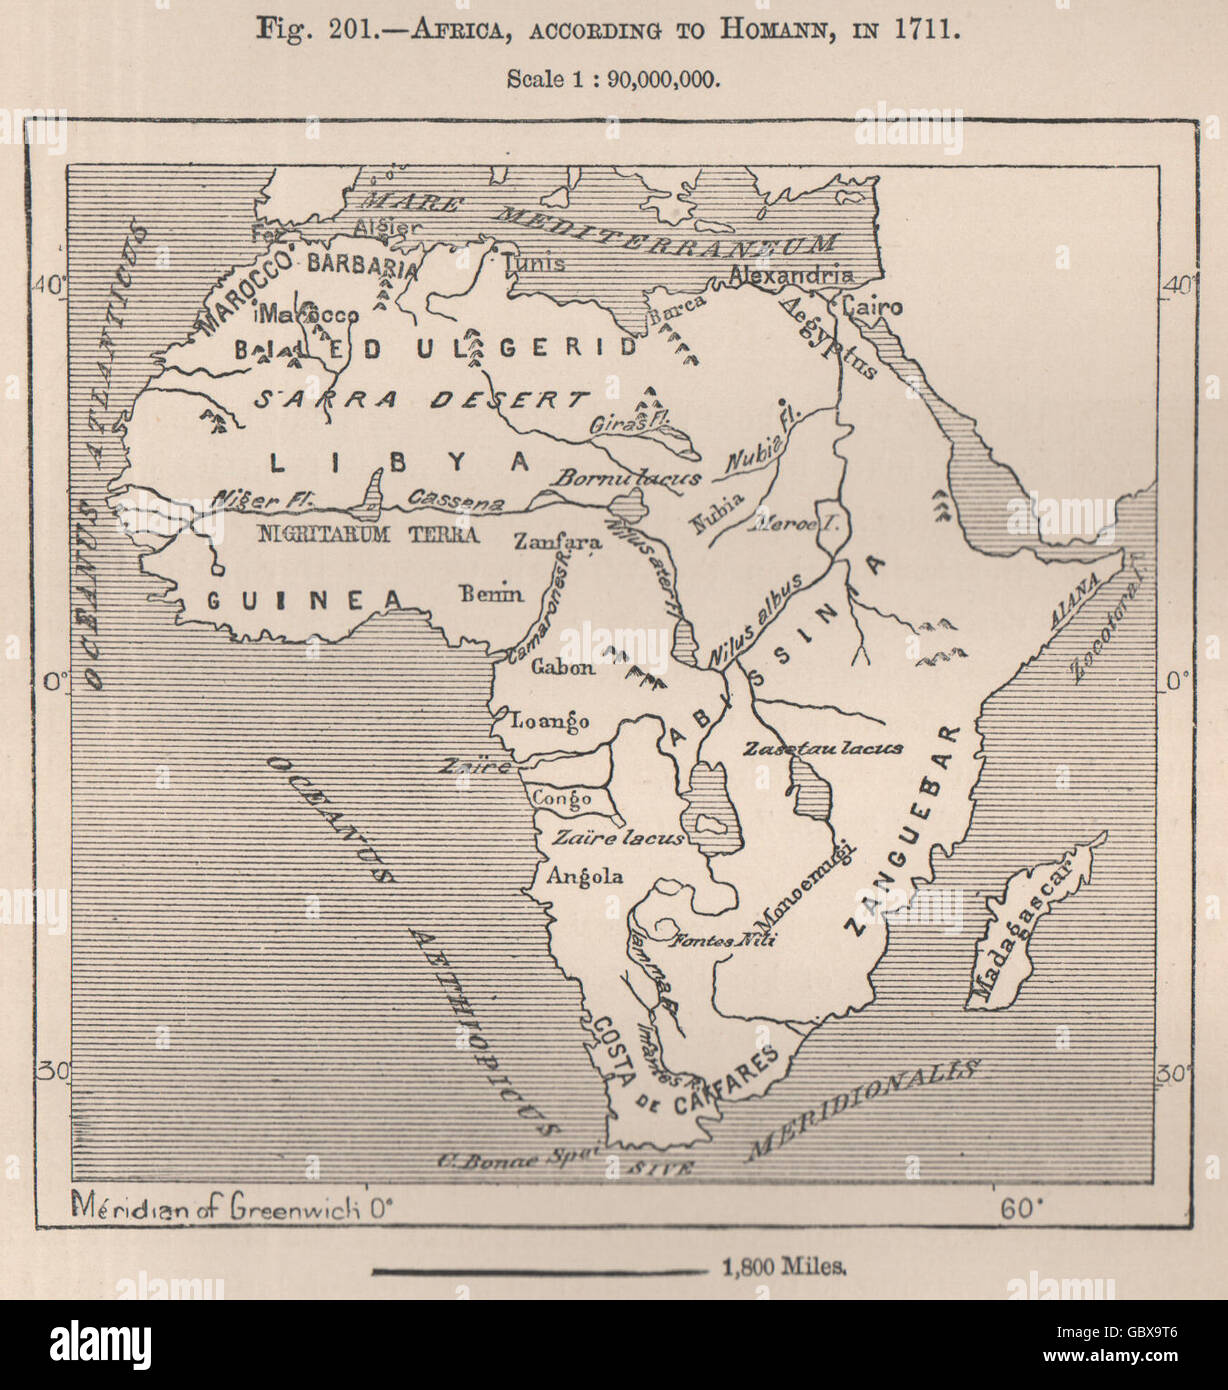 Congo Basin On Map Of Africa.Africa According To Homann In 1711 Congo Basin 1885 Antique Map